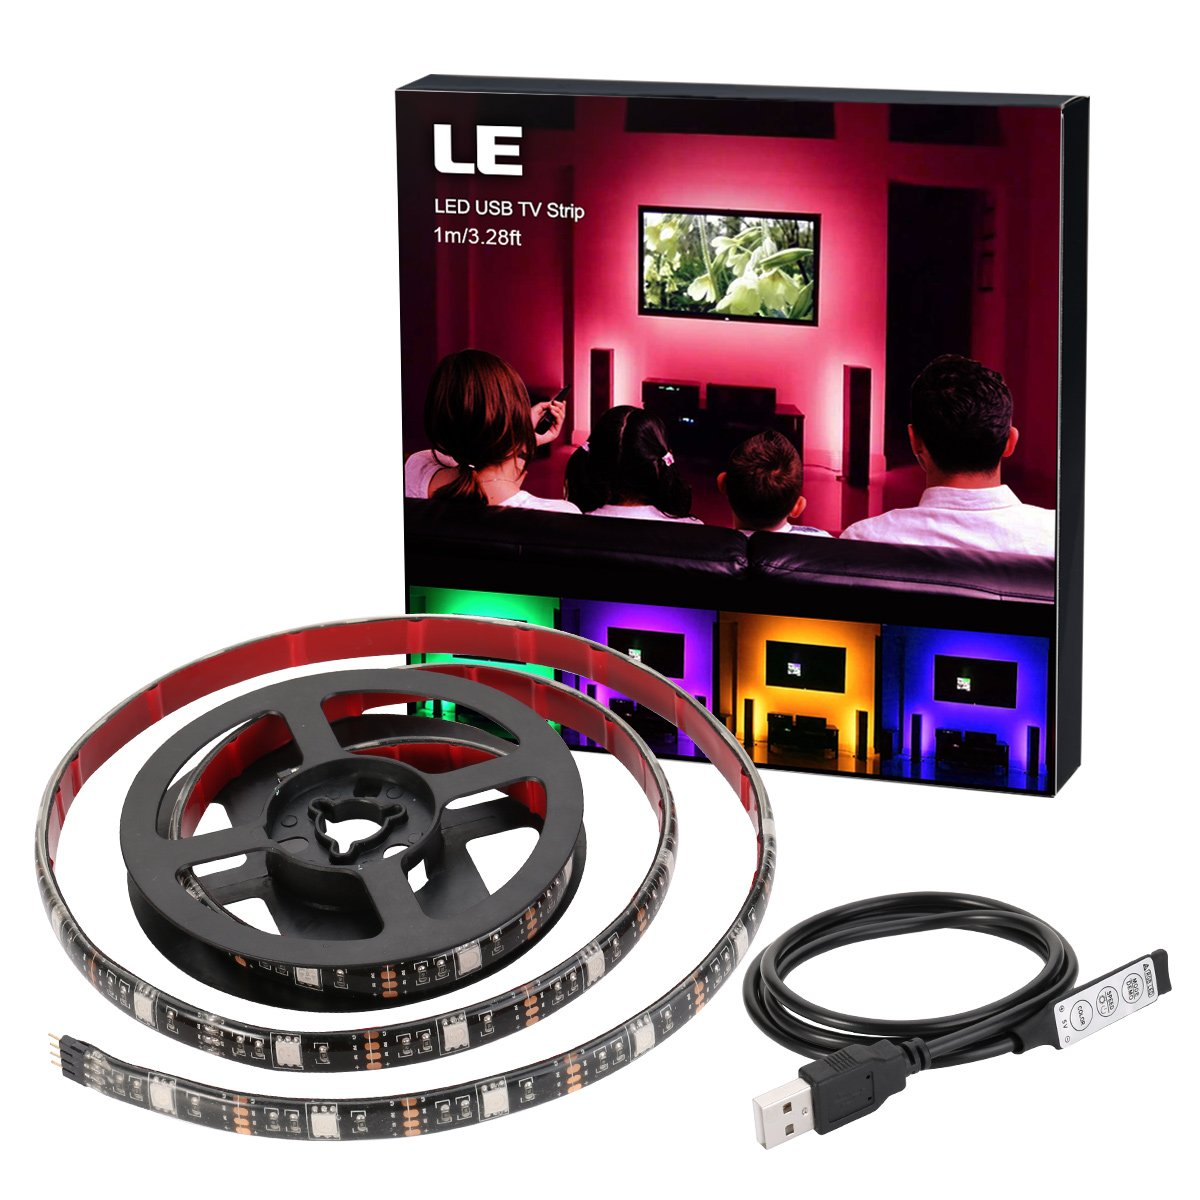 LE USB LED TV RGB Strip Light, 1M/3.28Ft, Multicolor 30 LEDs 5050SMD Waterproof Flexible RGB Backlight Bias Lighting Kit, with DC 5V USB Cable and Mini Controller Lighting EVER